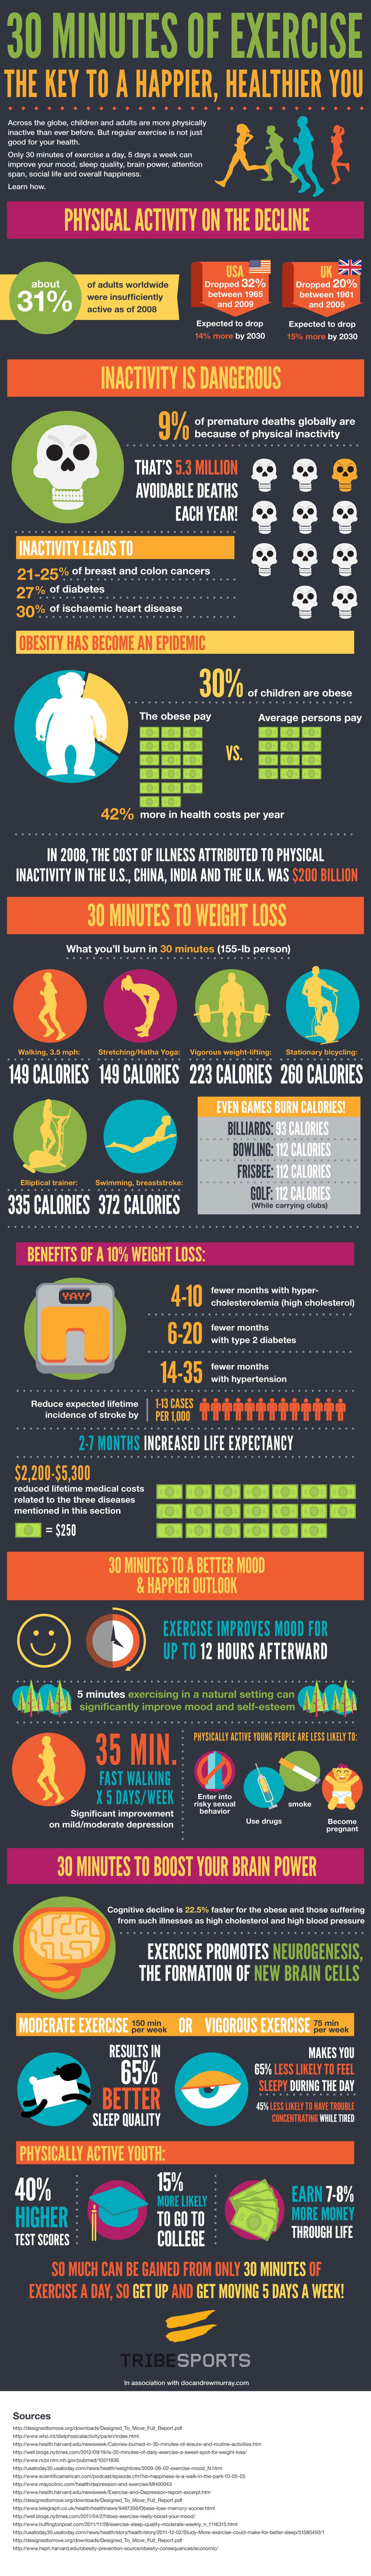 30 minutes of exercise